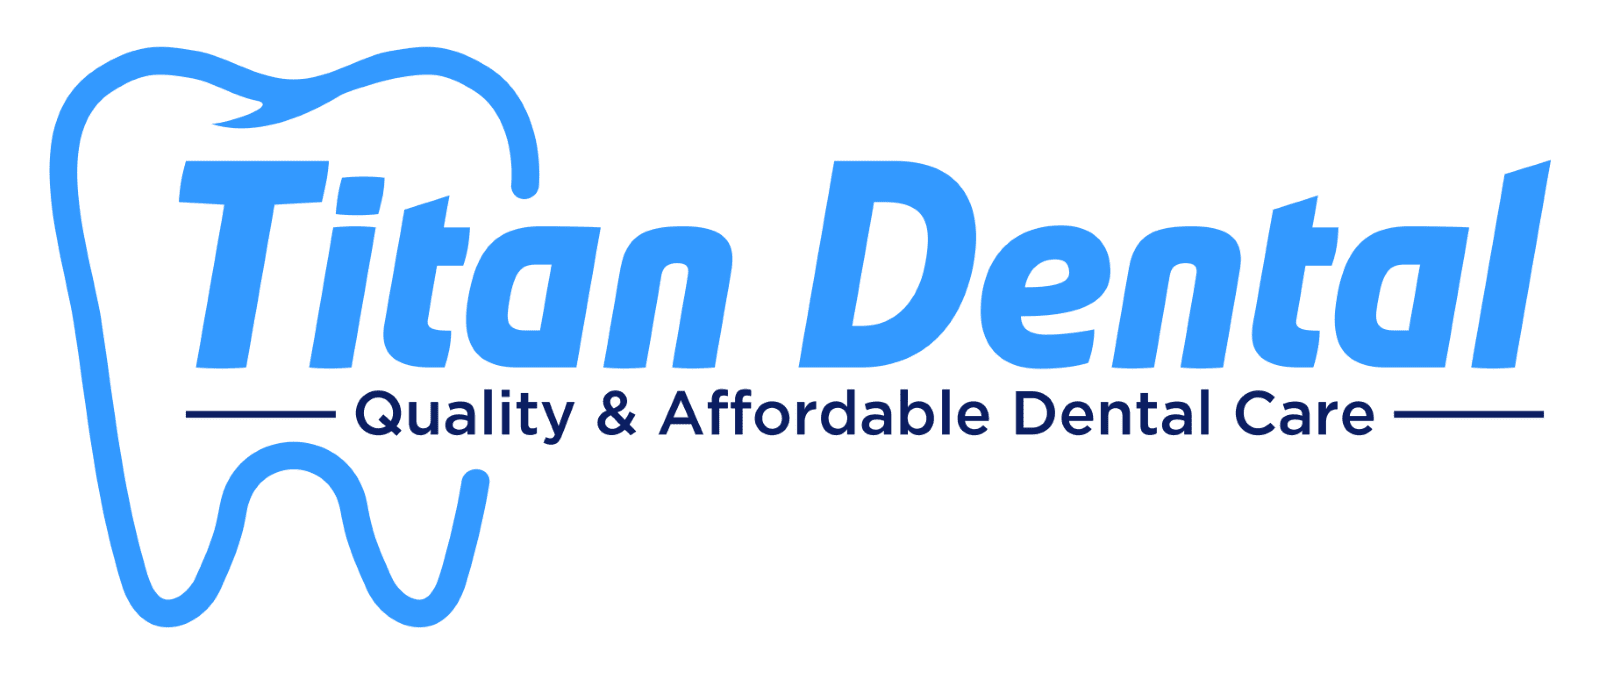 Affordable Family Dentist in Franklin TN and Sedation Dentistry